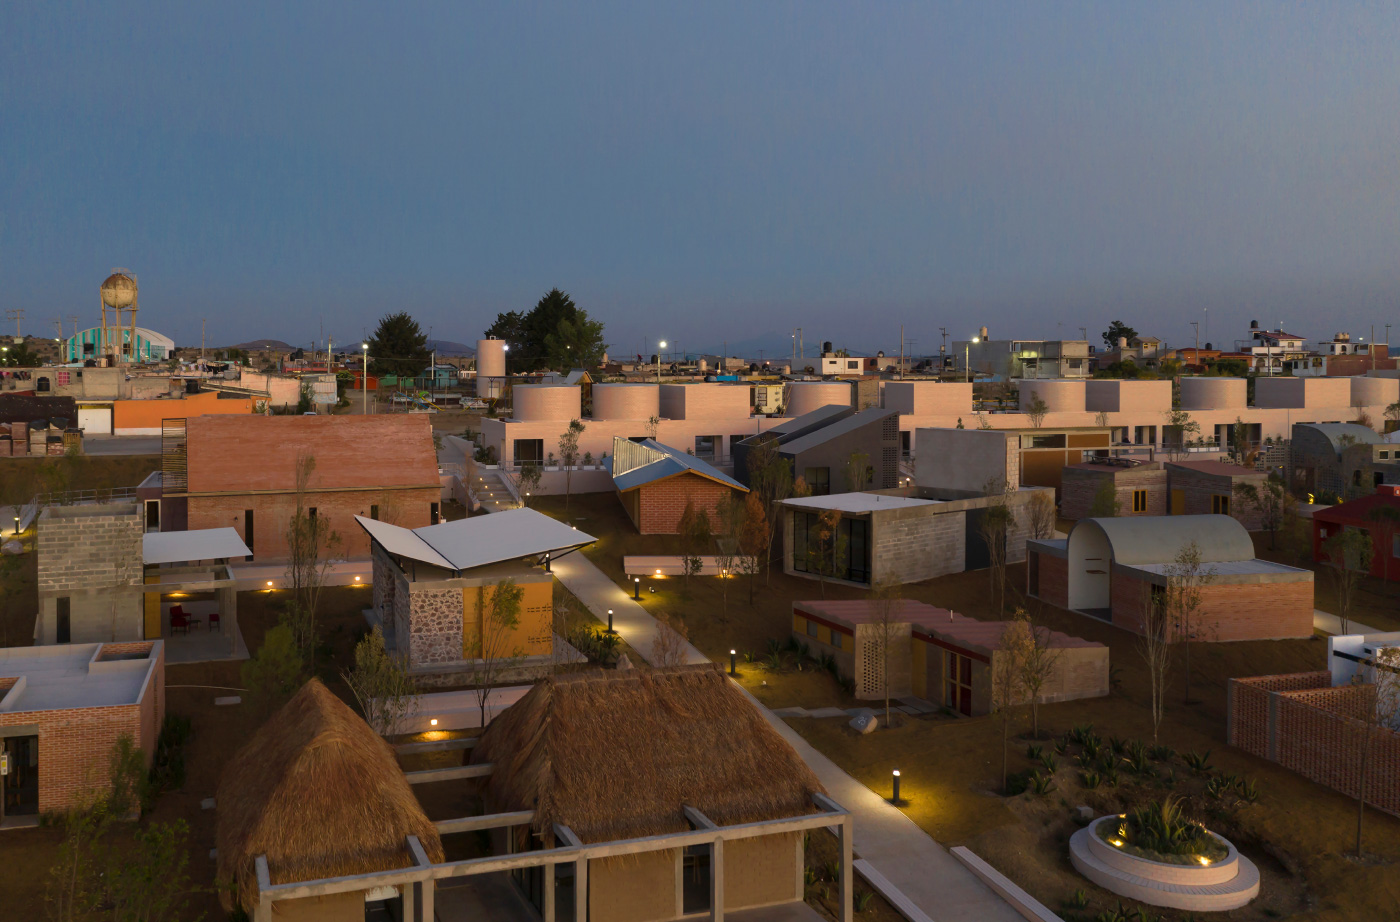 Mexico S Housing Laboratory Shows Off 32 Low Cost Prototypes